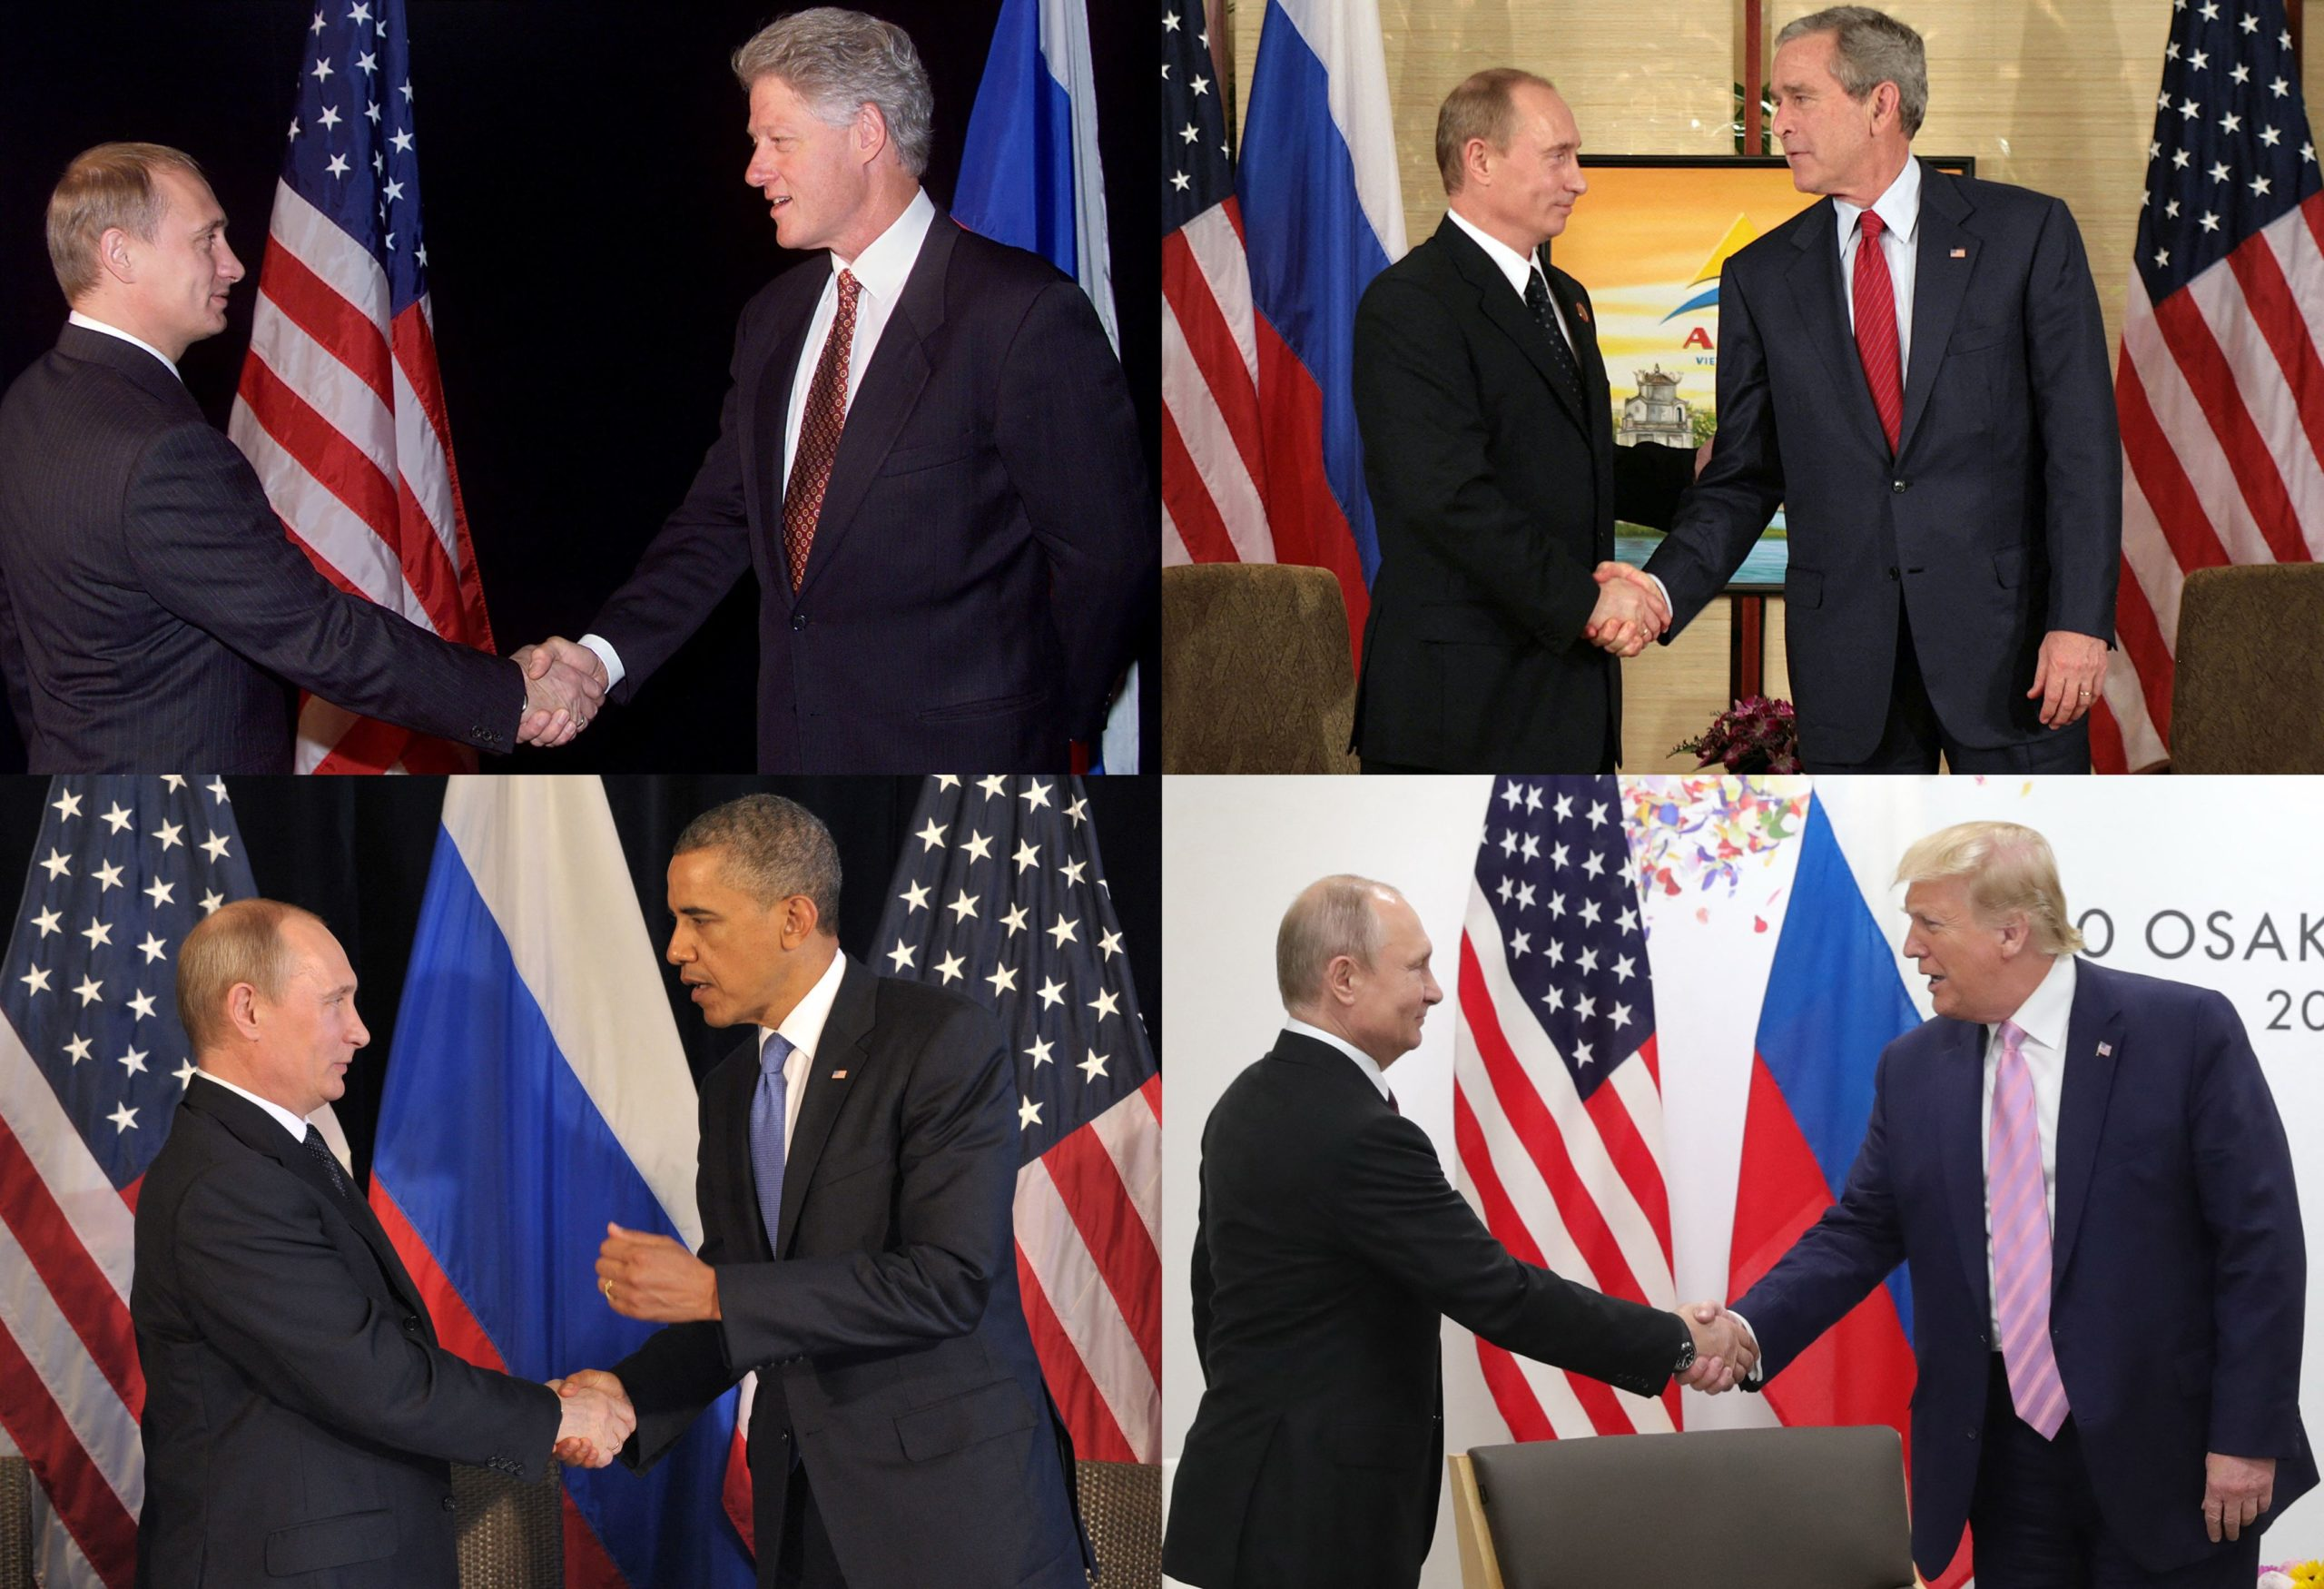 (COMBO) This combination of pictures created on June 11, 2021 shows Russian President Vladimir Putin (L) shaking hands with US Presidents (from top left) Bill Clinton in the lobby of the Stamford Hotel in Auckland, New Zealand on September 12, 1999 on the first day of the annual Asia Pacific Economic Cooperation (APEC) meeting, US President George W. Bush during a bilateral meeting on the sidelines of the Asian Pacific Economic Cooperation (APEC) summit in Hanoi on November 19, 2006, US President Barack Obama in Los Cabos, Mexico, on June 18, 2012, during the G20 leaders Summit and US President Donald Trump during the G20 summit in Osaka on June 28, 2019. (Photo by various sources / AFP) (Photo by STEPHEN JAFFE,JIM WATSON,ALEXEY NIKOLSKY,MIKHAIL KLIMENTYEV/RIA NOVOSTI/AFP via Getty Images)